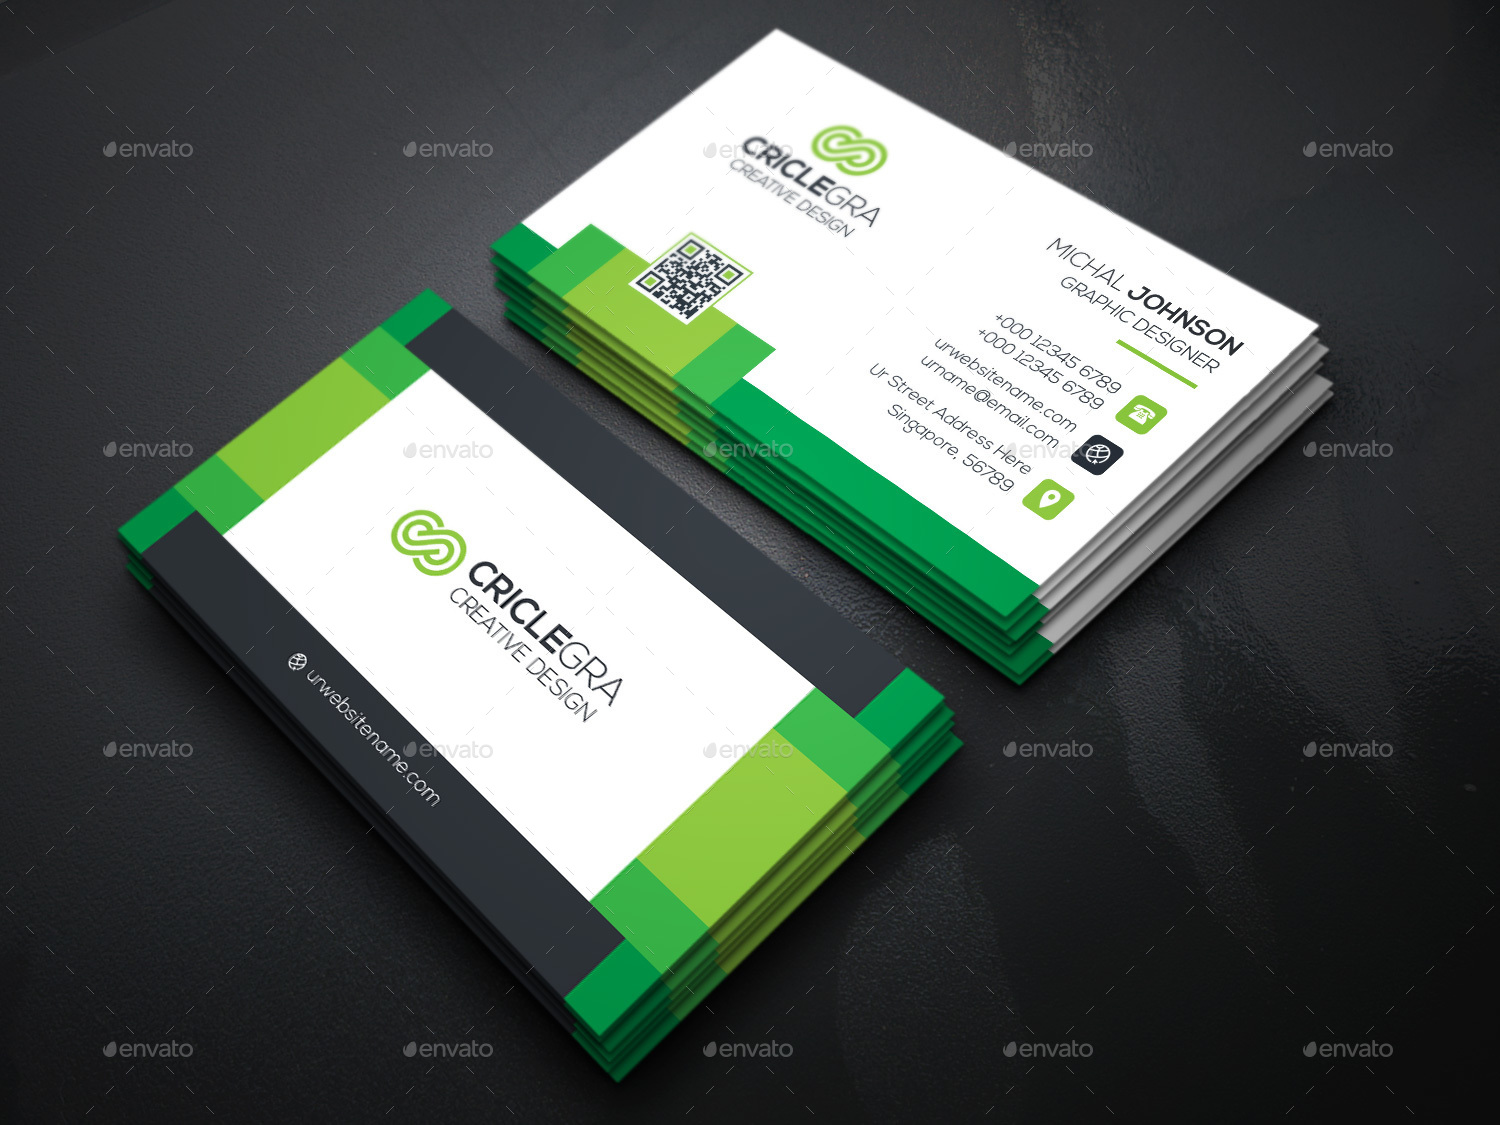 Corporate business card by generousart graphicriver preview image set01technology business cardg preview image set02technology business cardg preview image set03technology business cardg magicingreecefo Gallery